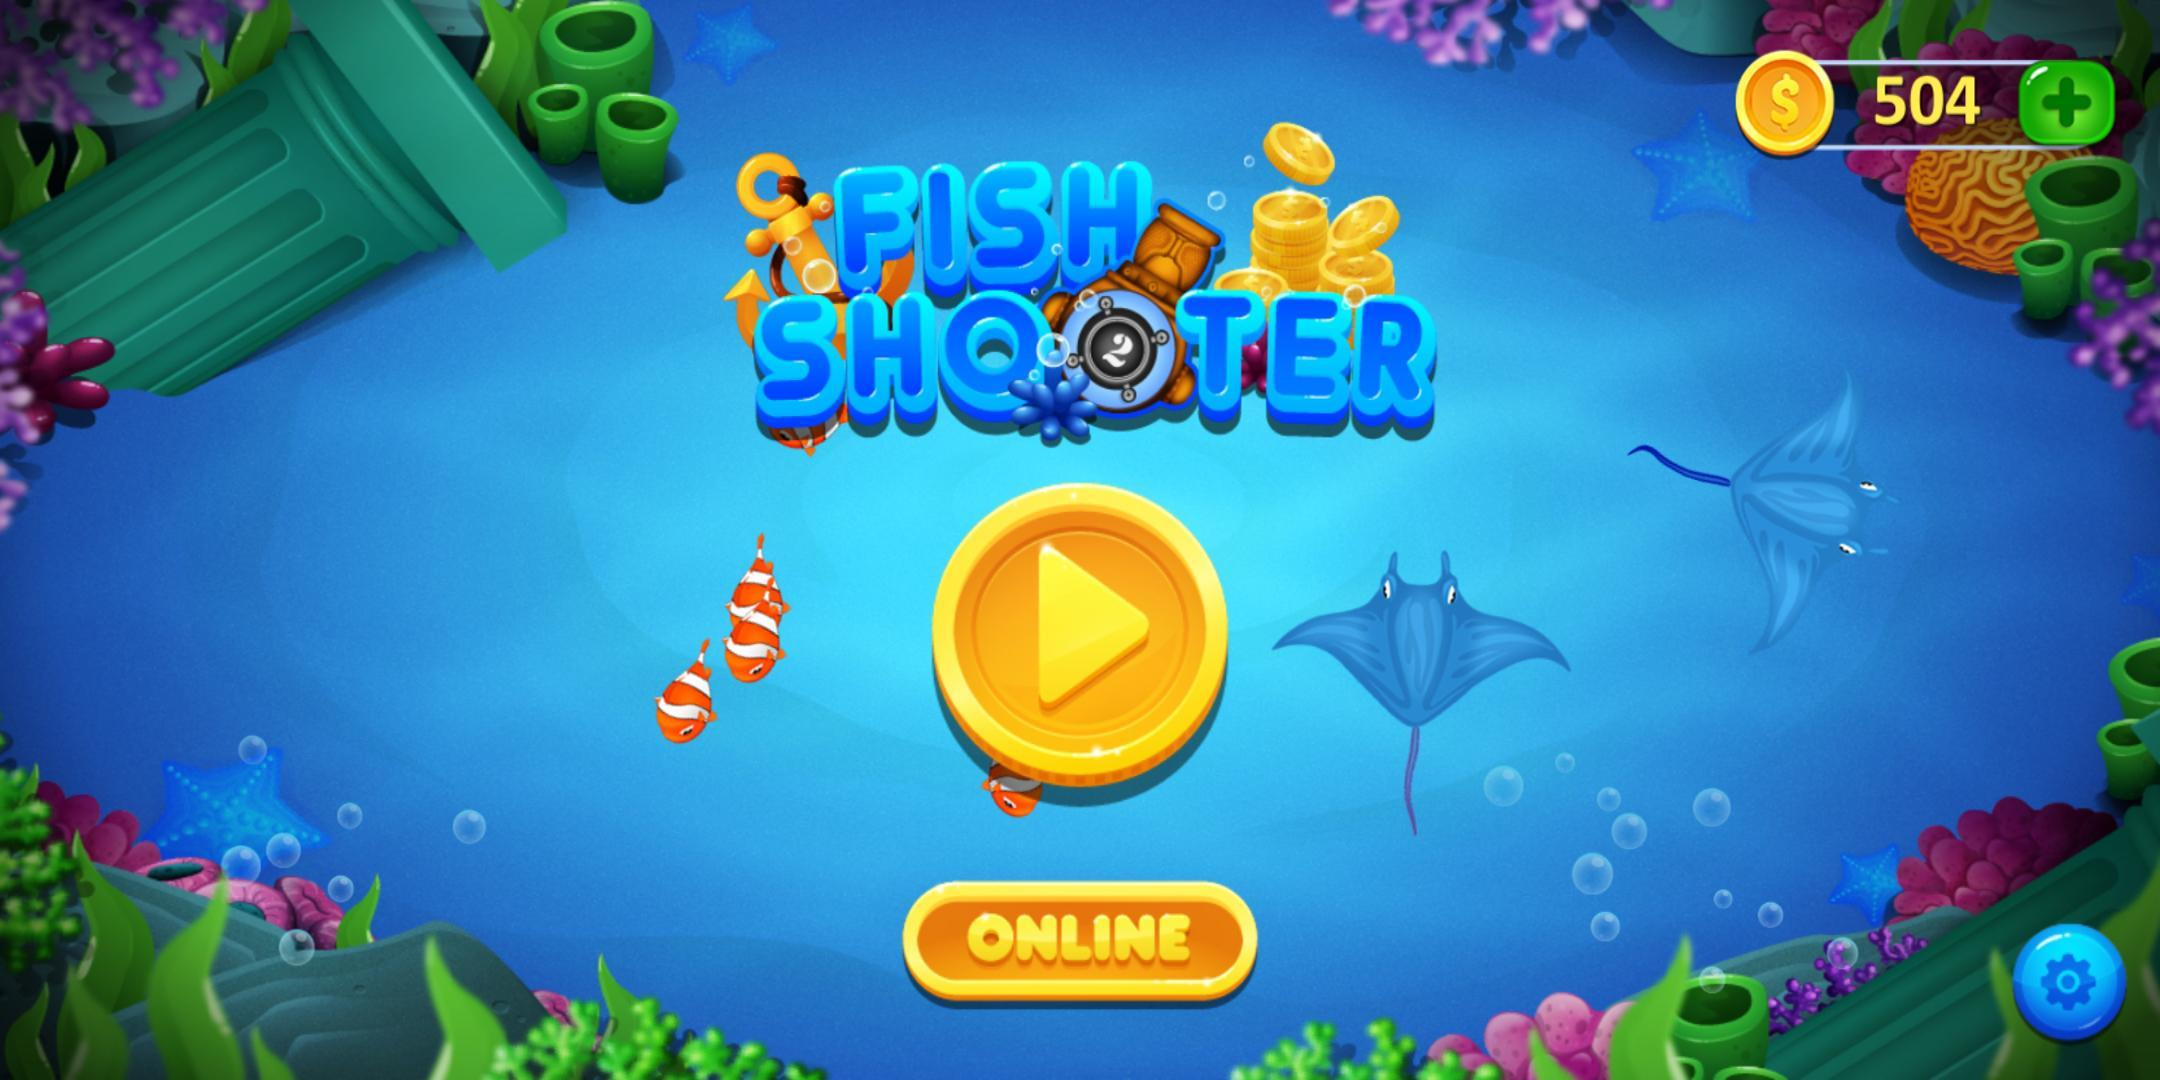 Fish shooting games – Guidance to the beginners at online websites